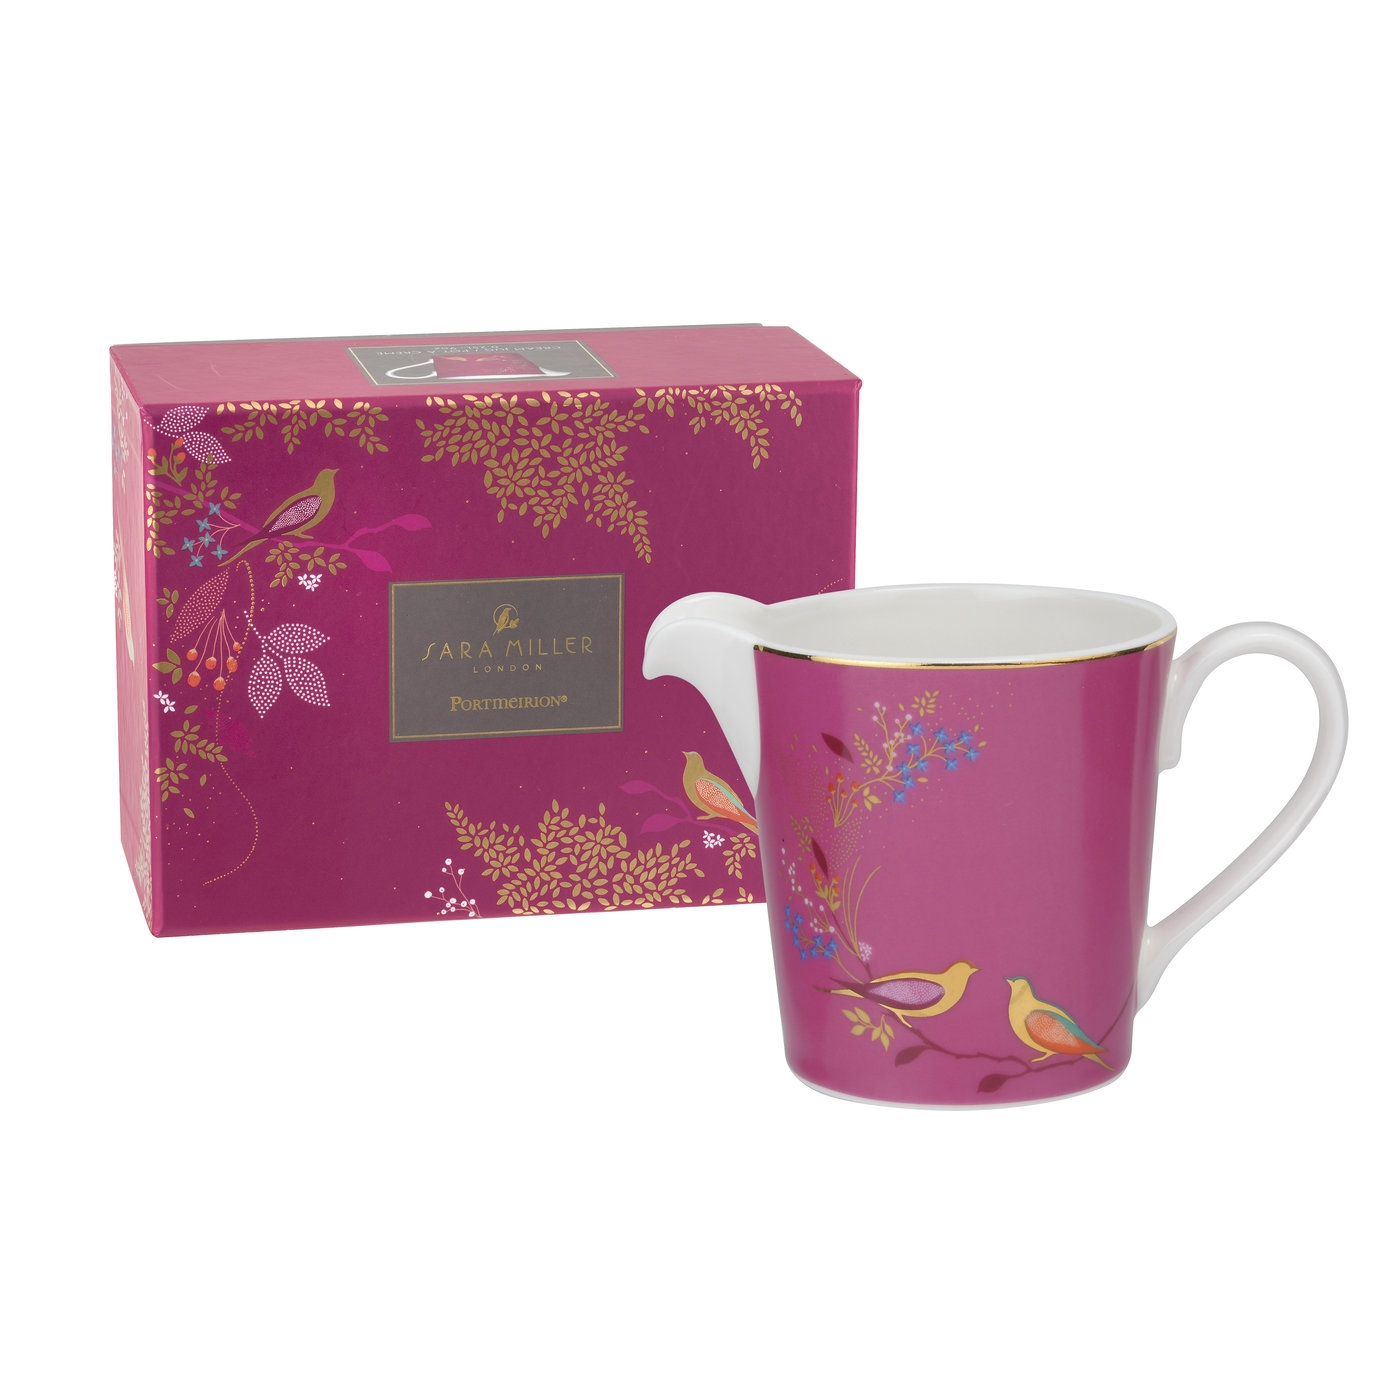 Sara Miller London for Portmeirion Chelsea Collection Cream Jug Pink image number 0